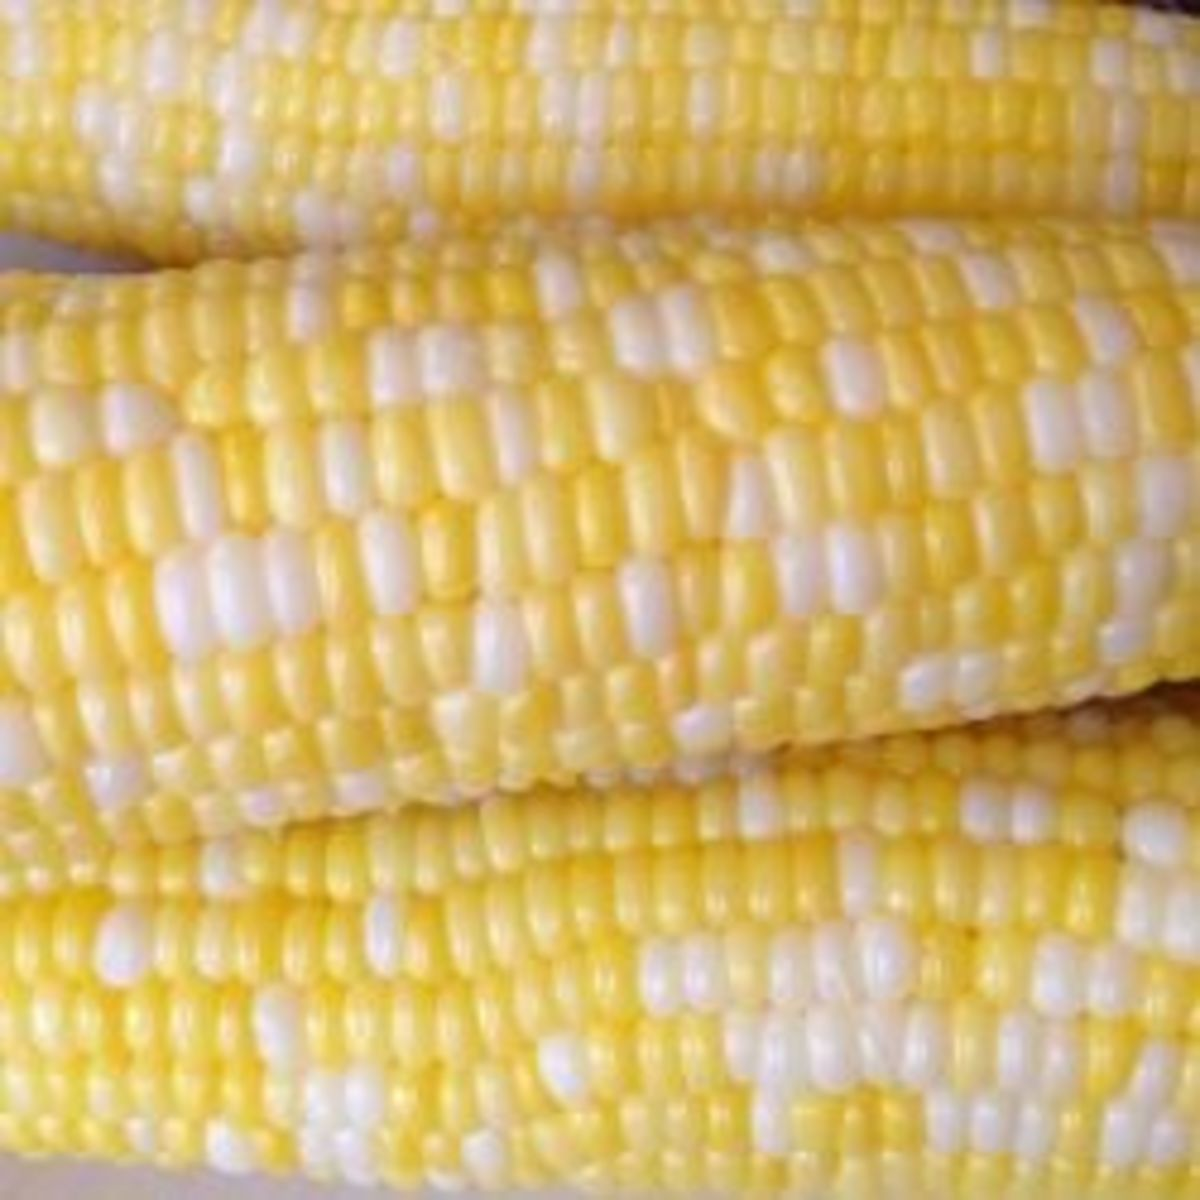 Olathe Sweet Corn